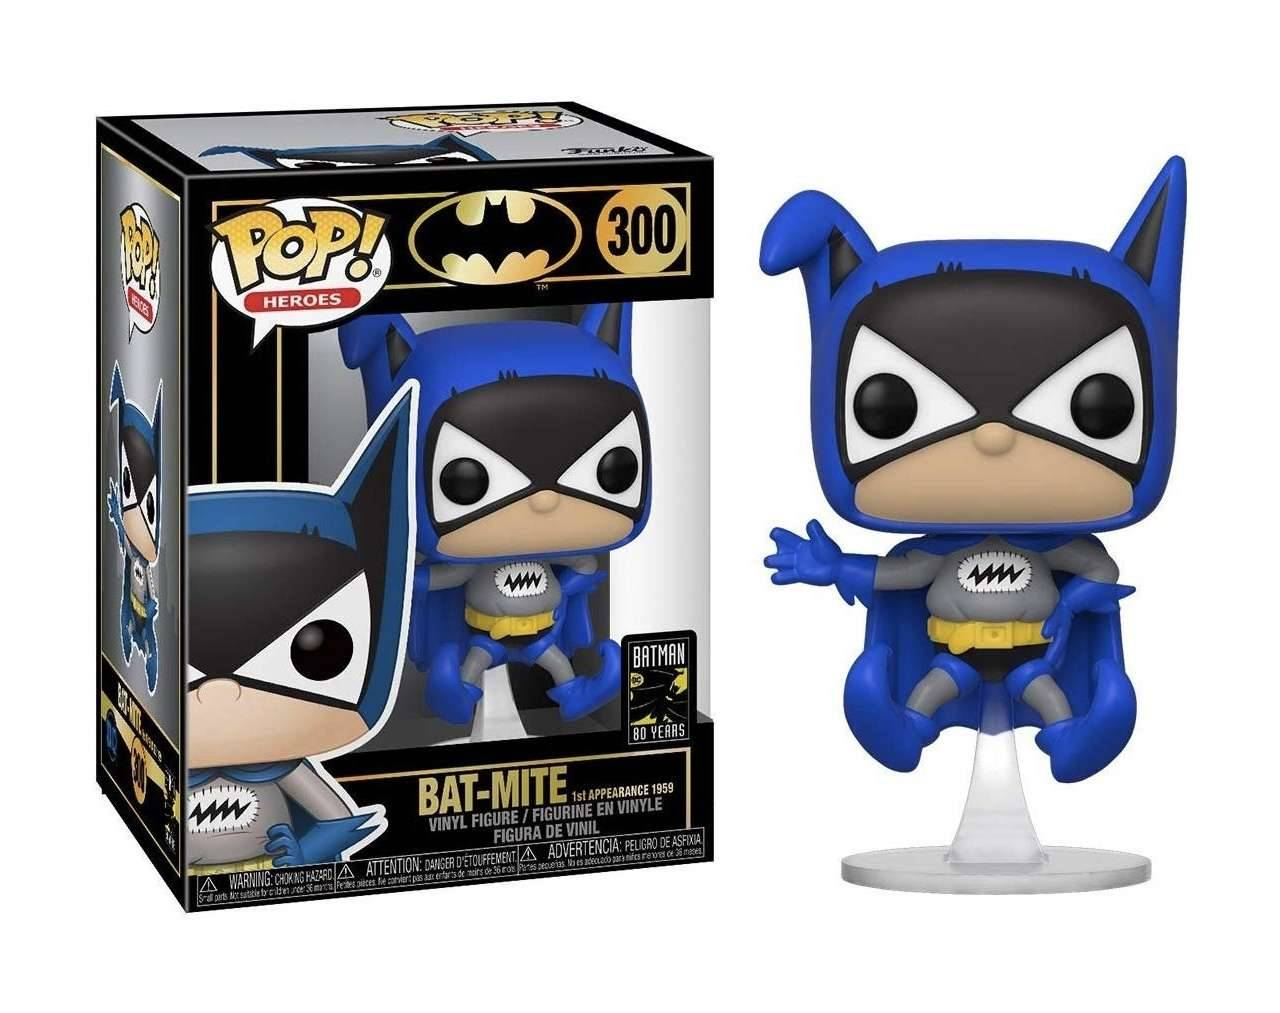 Bat-Mite (First Appearance) Pop! Vinyl